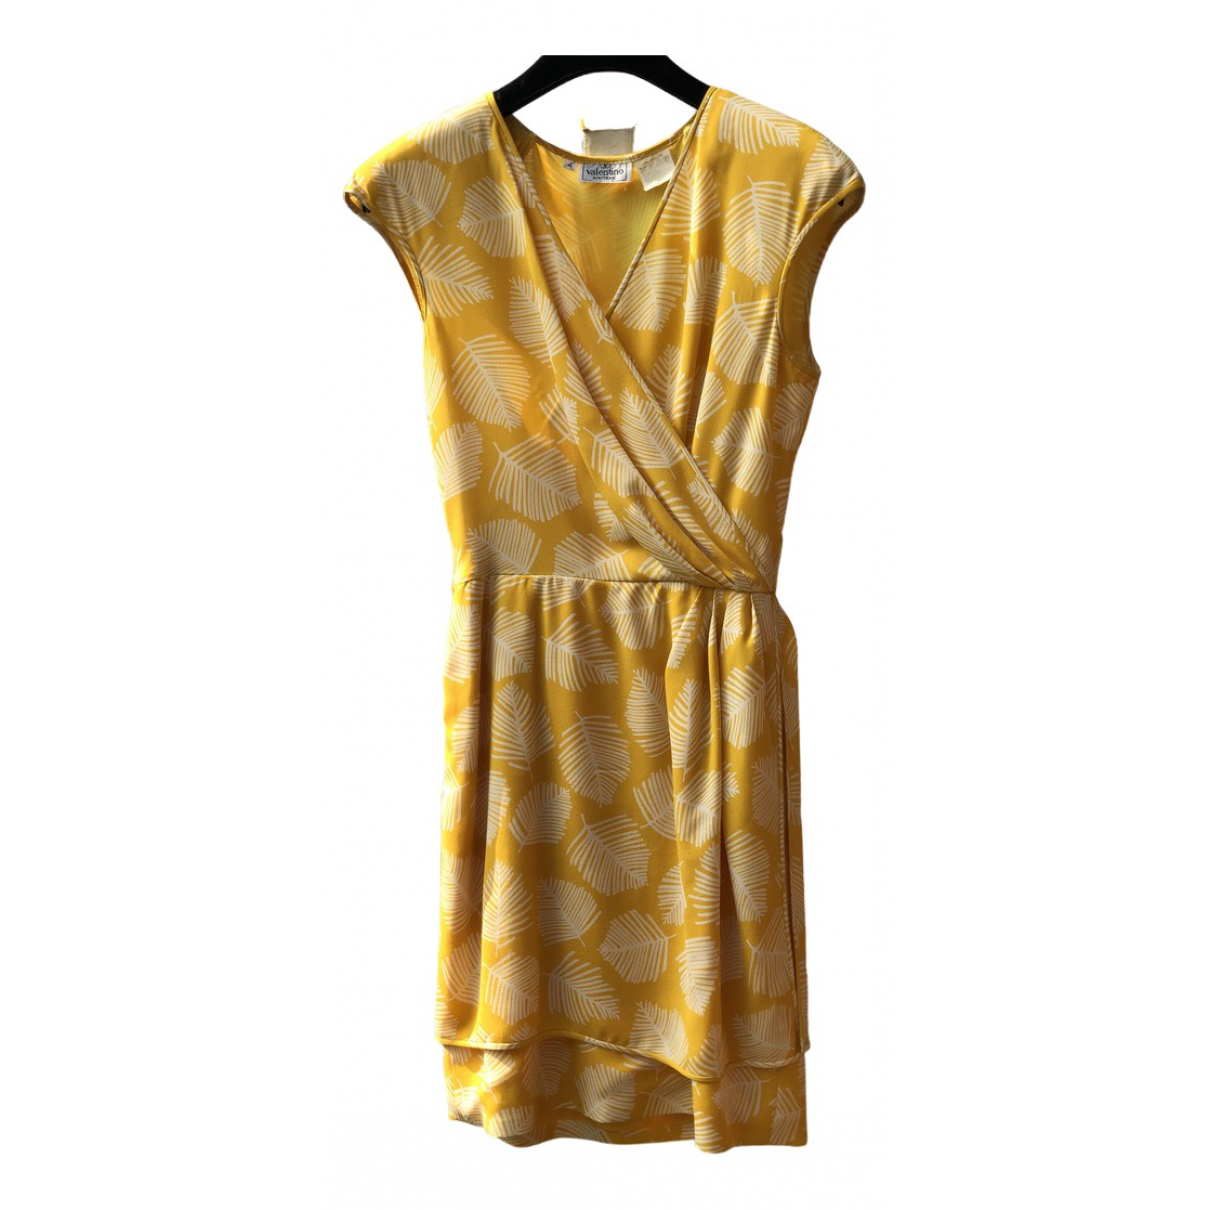 Valentino Garavani N Yellow Silk dress for Women 4 UK